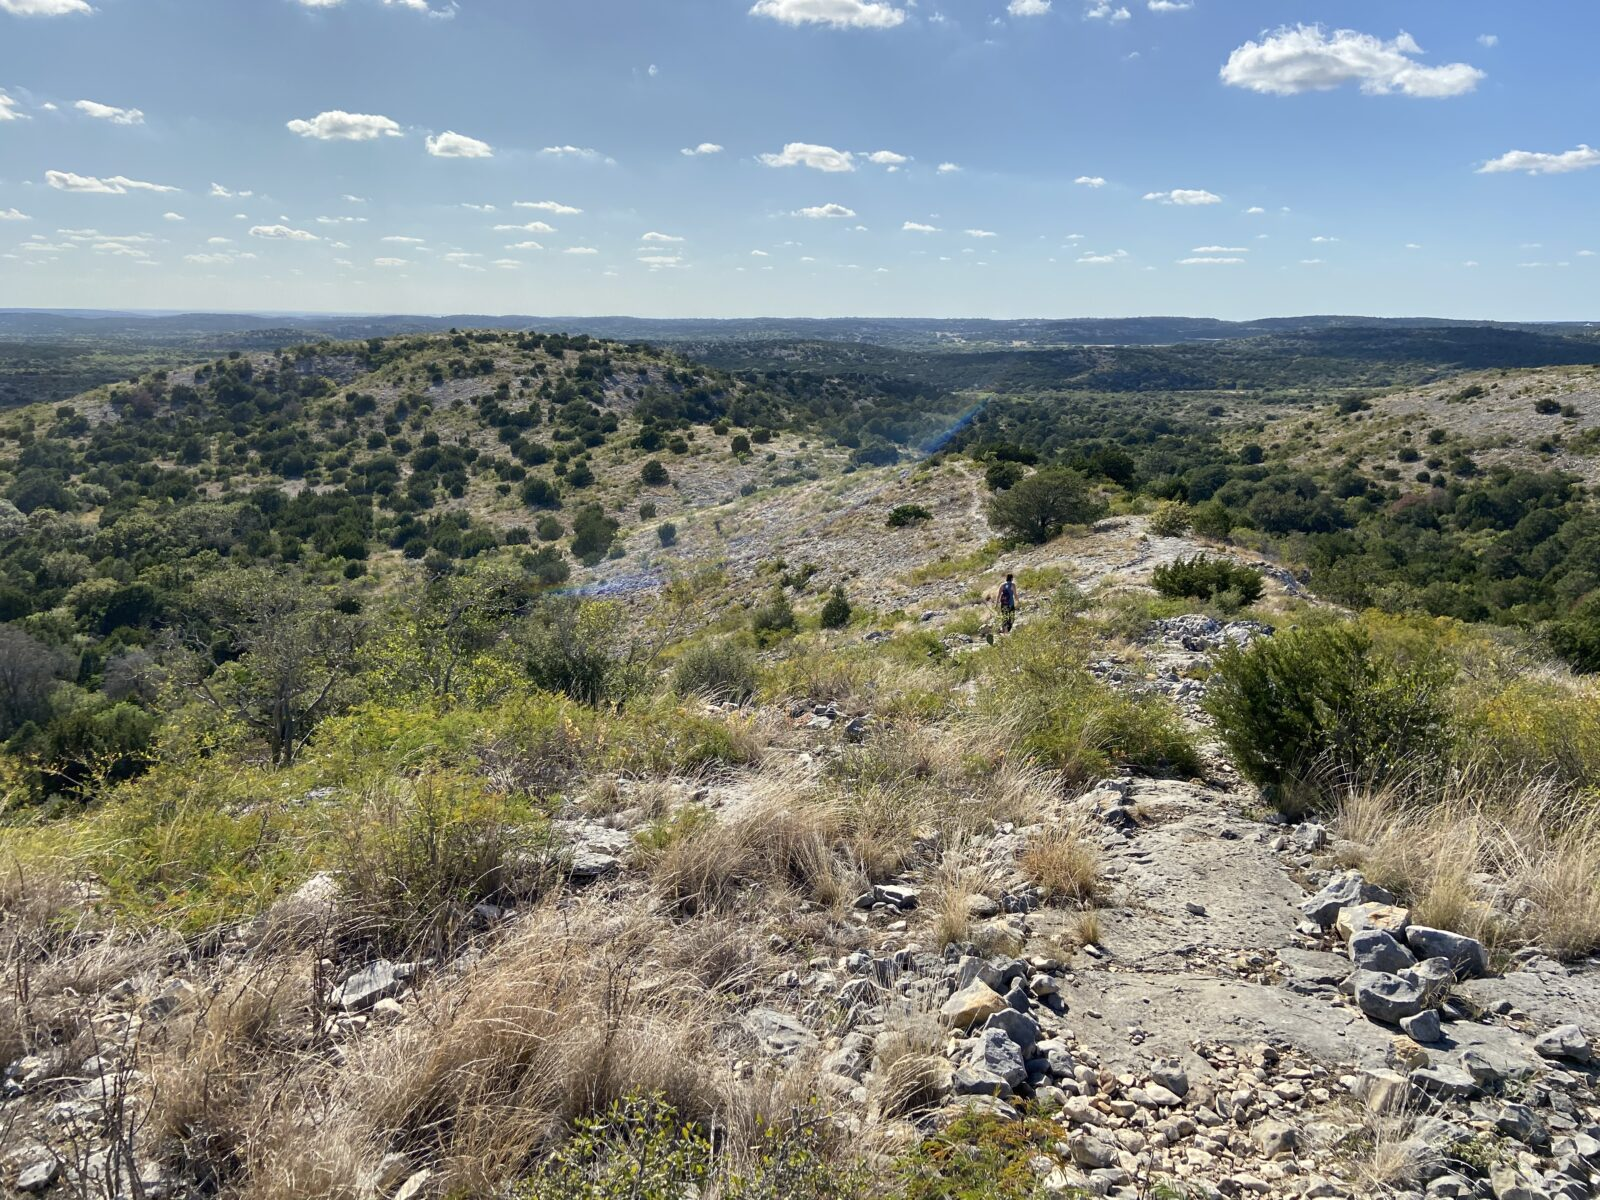 The Barbado Ridge Trail at Kickapoo Cavern State Park is simply awesome as Texas Hill Country transitions into Big Bend Country.